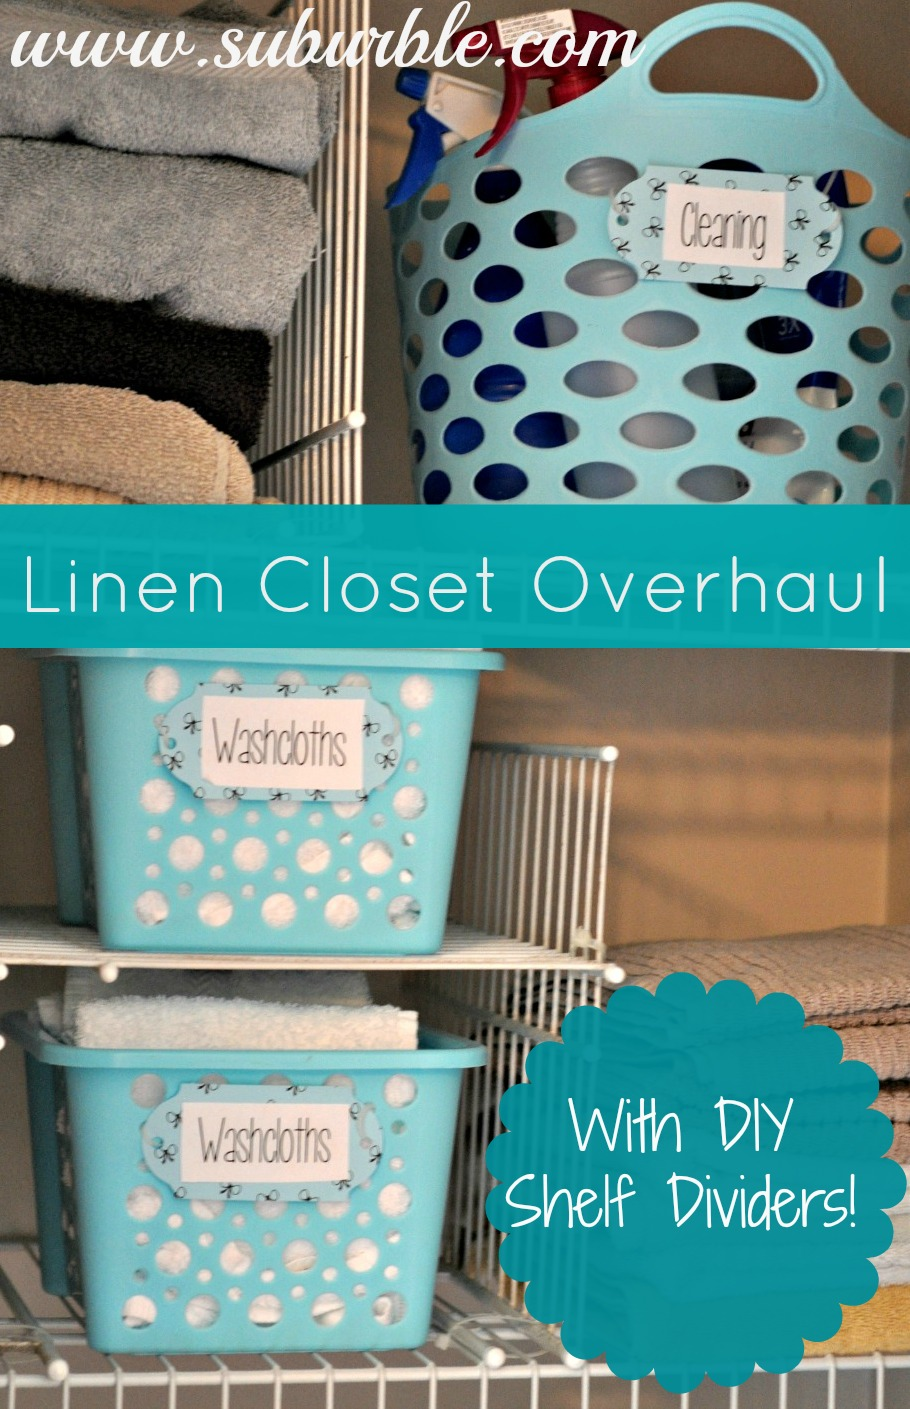 My Life is Embarrassing: The Linen Closet - Suburble